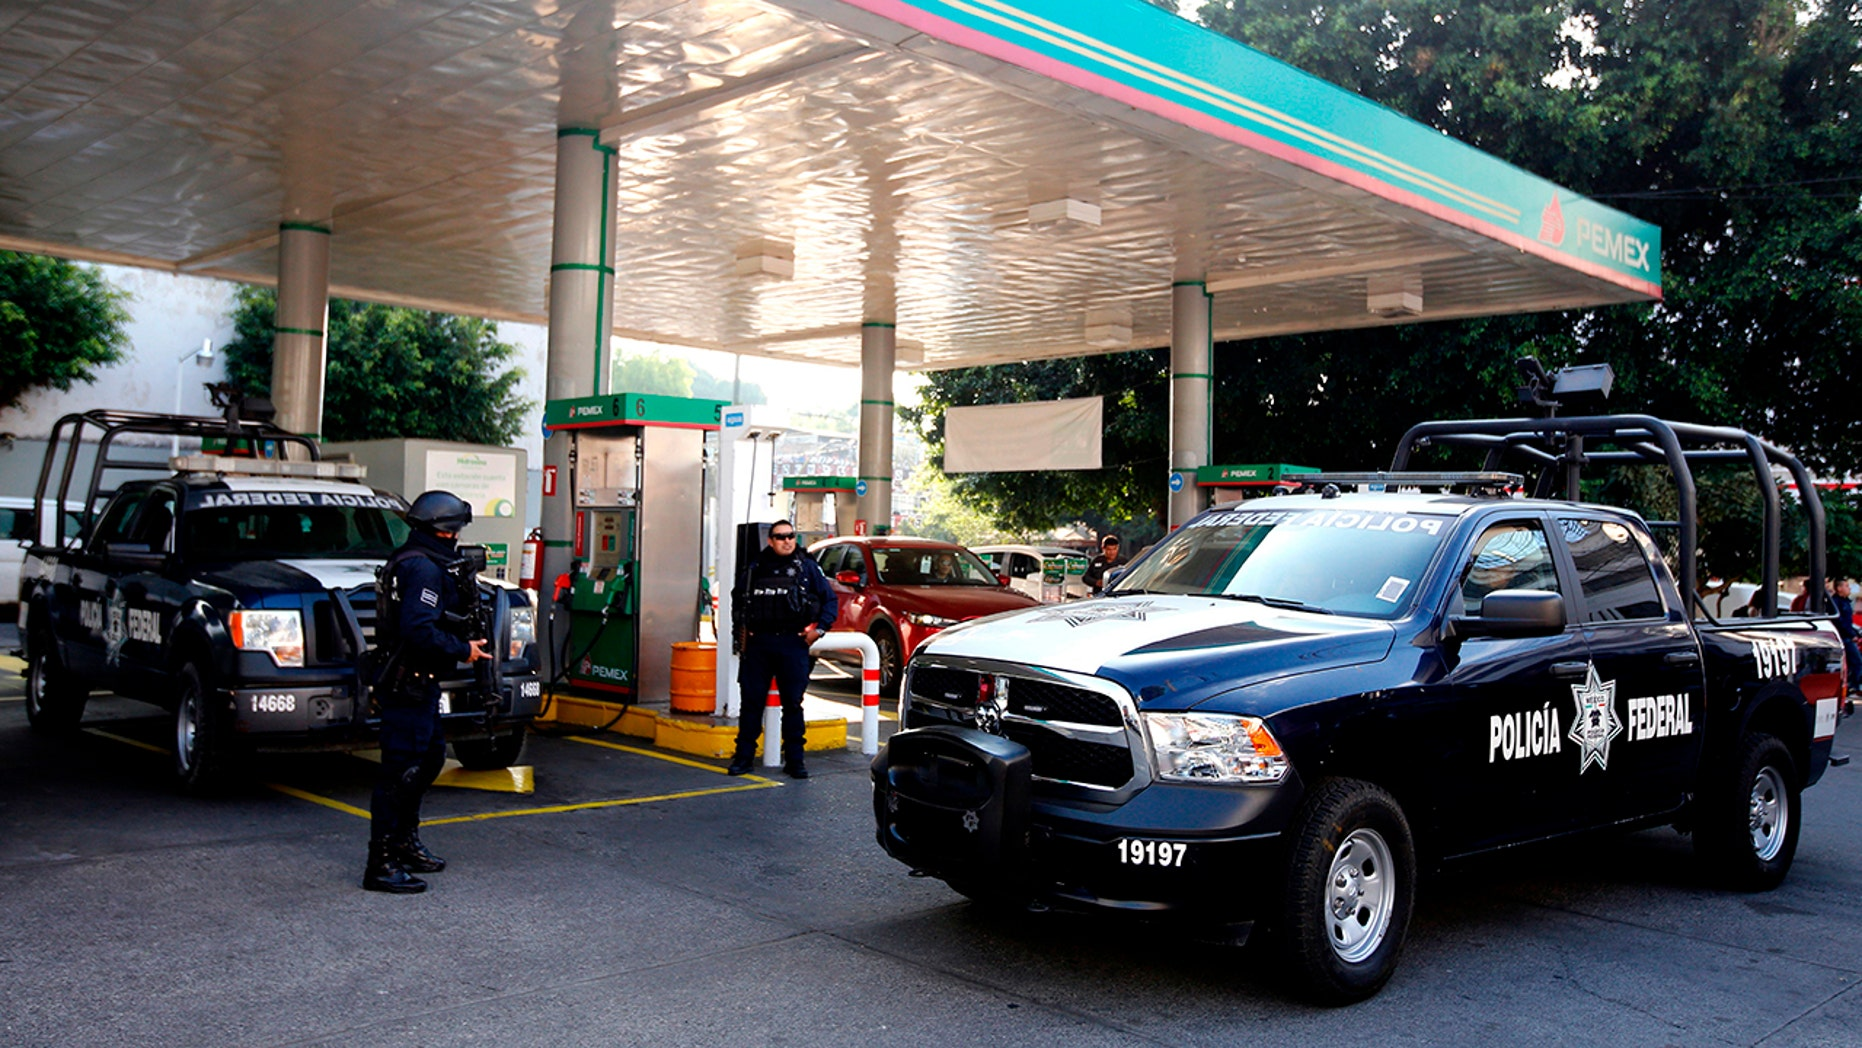 Federal police officers stand guard at a gas station in Guadalajara, Jalisco State, Mexico, on January 18, 2019. Mexican investigators opened a record number of murder cases the year prior, statistics show.